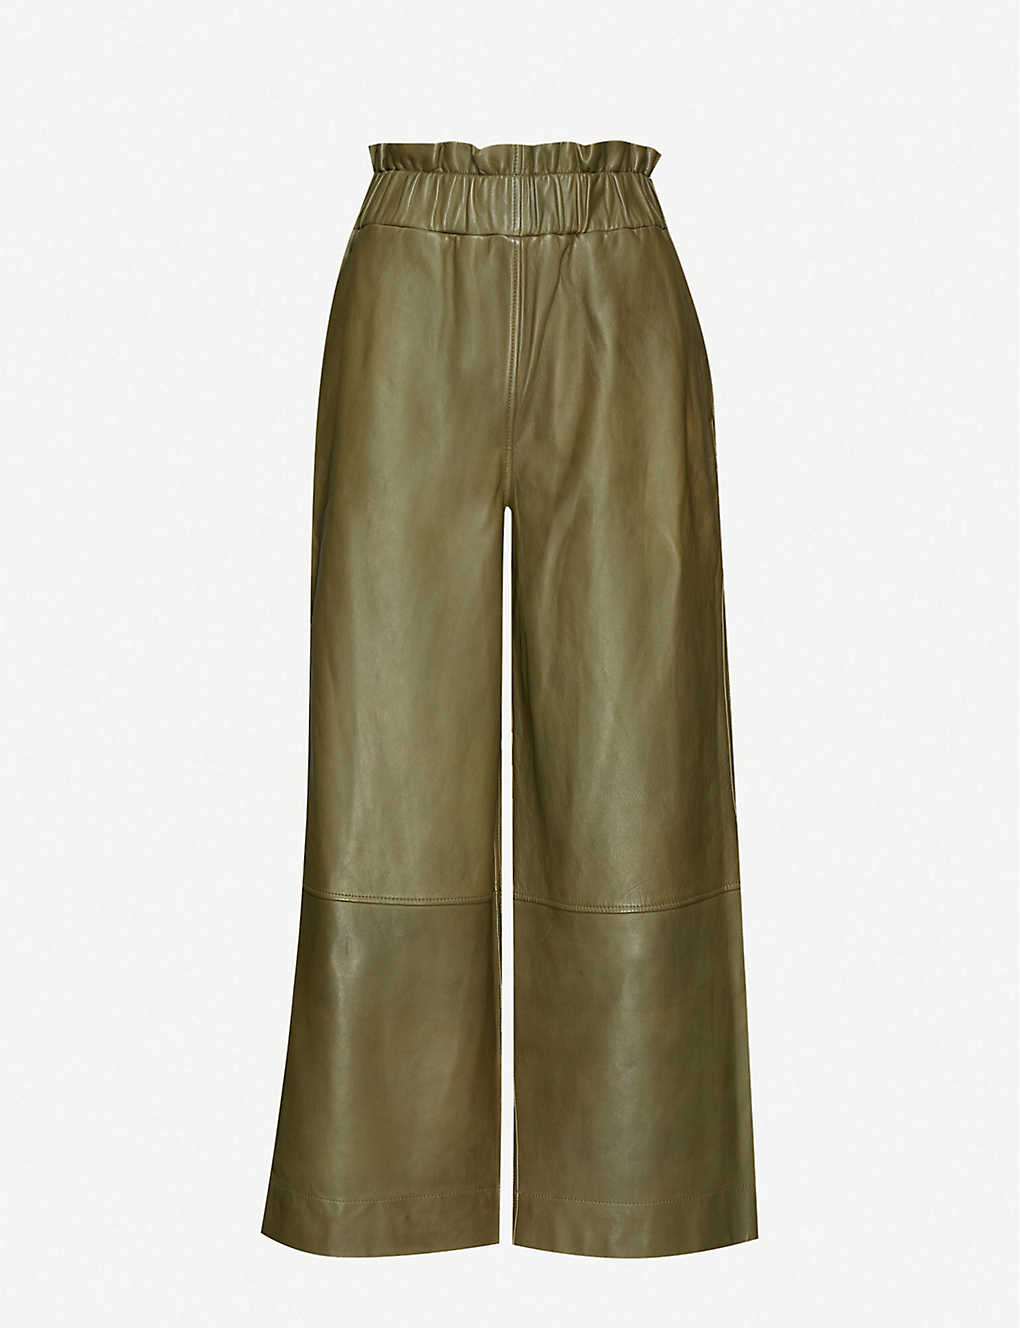 GANNI: High-rise wide leather trousers